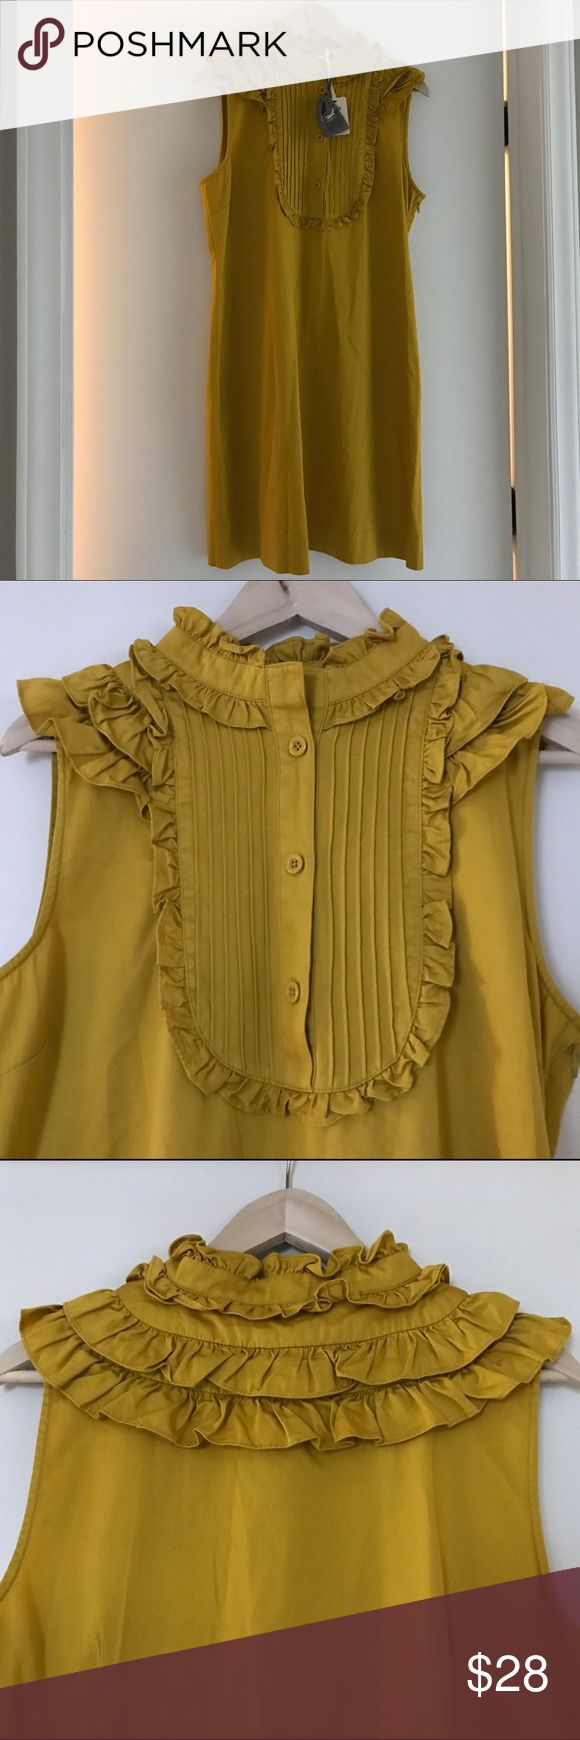 "NWT Fossil Mustard Yellow Dress, Size M NWT Fossil mustard gold dress. Size M. Sleeveless with side zip. Collar, lapel, and front of chest feature lovely ruffles. The ruffles extend round the back of the neck. The front of chest also has a three button closure and pleats. 100% cotton. This is a beautiful, comfortable dress with lots of stylish details. It screams ""autumn."" Fossil Dresses Mini"